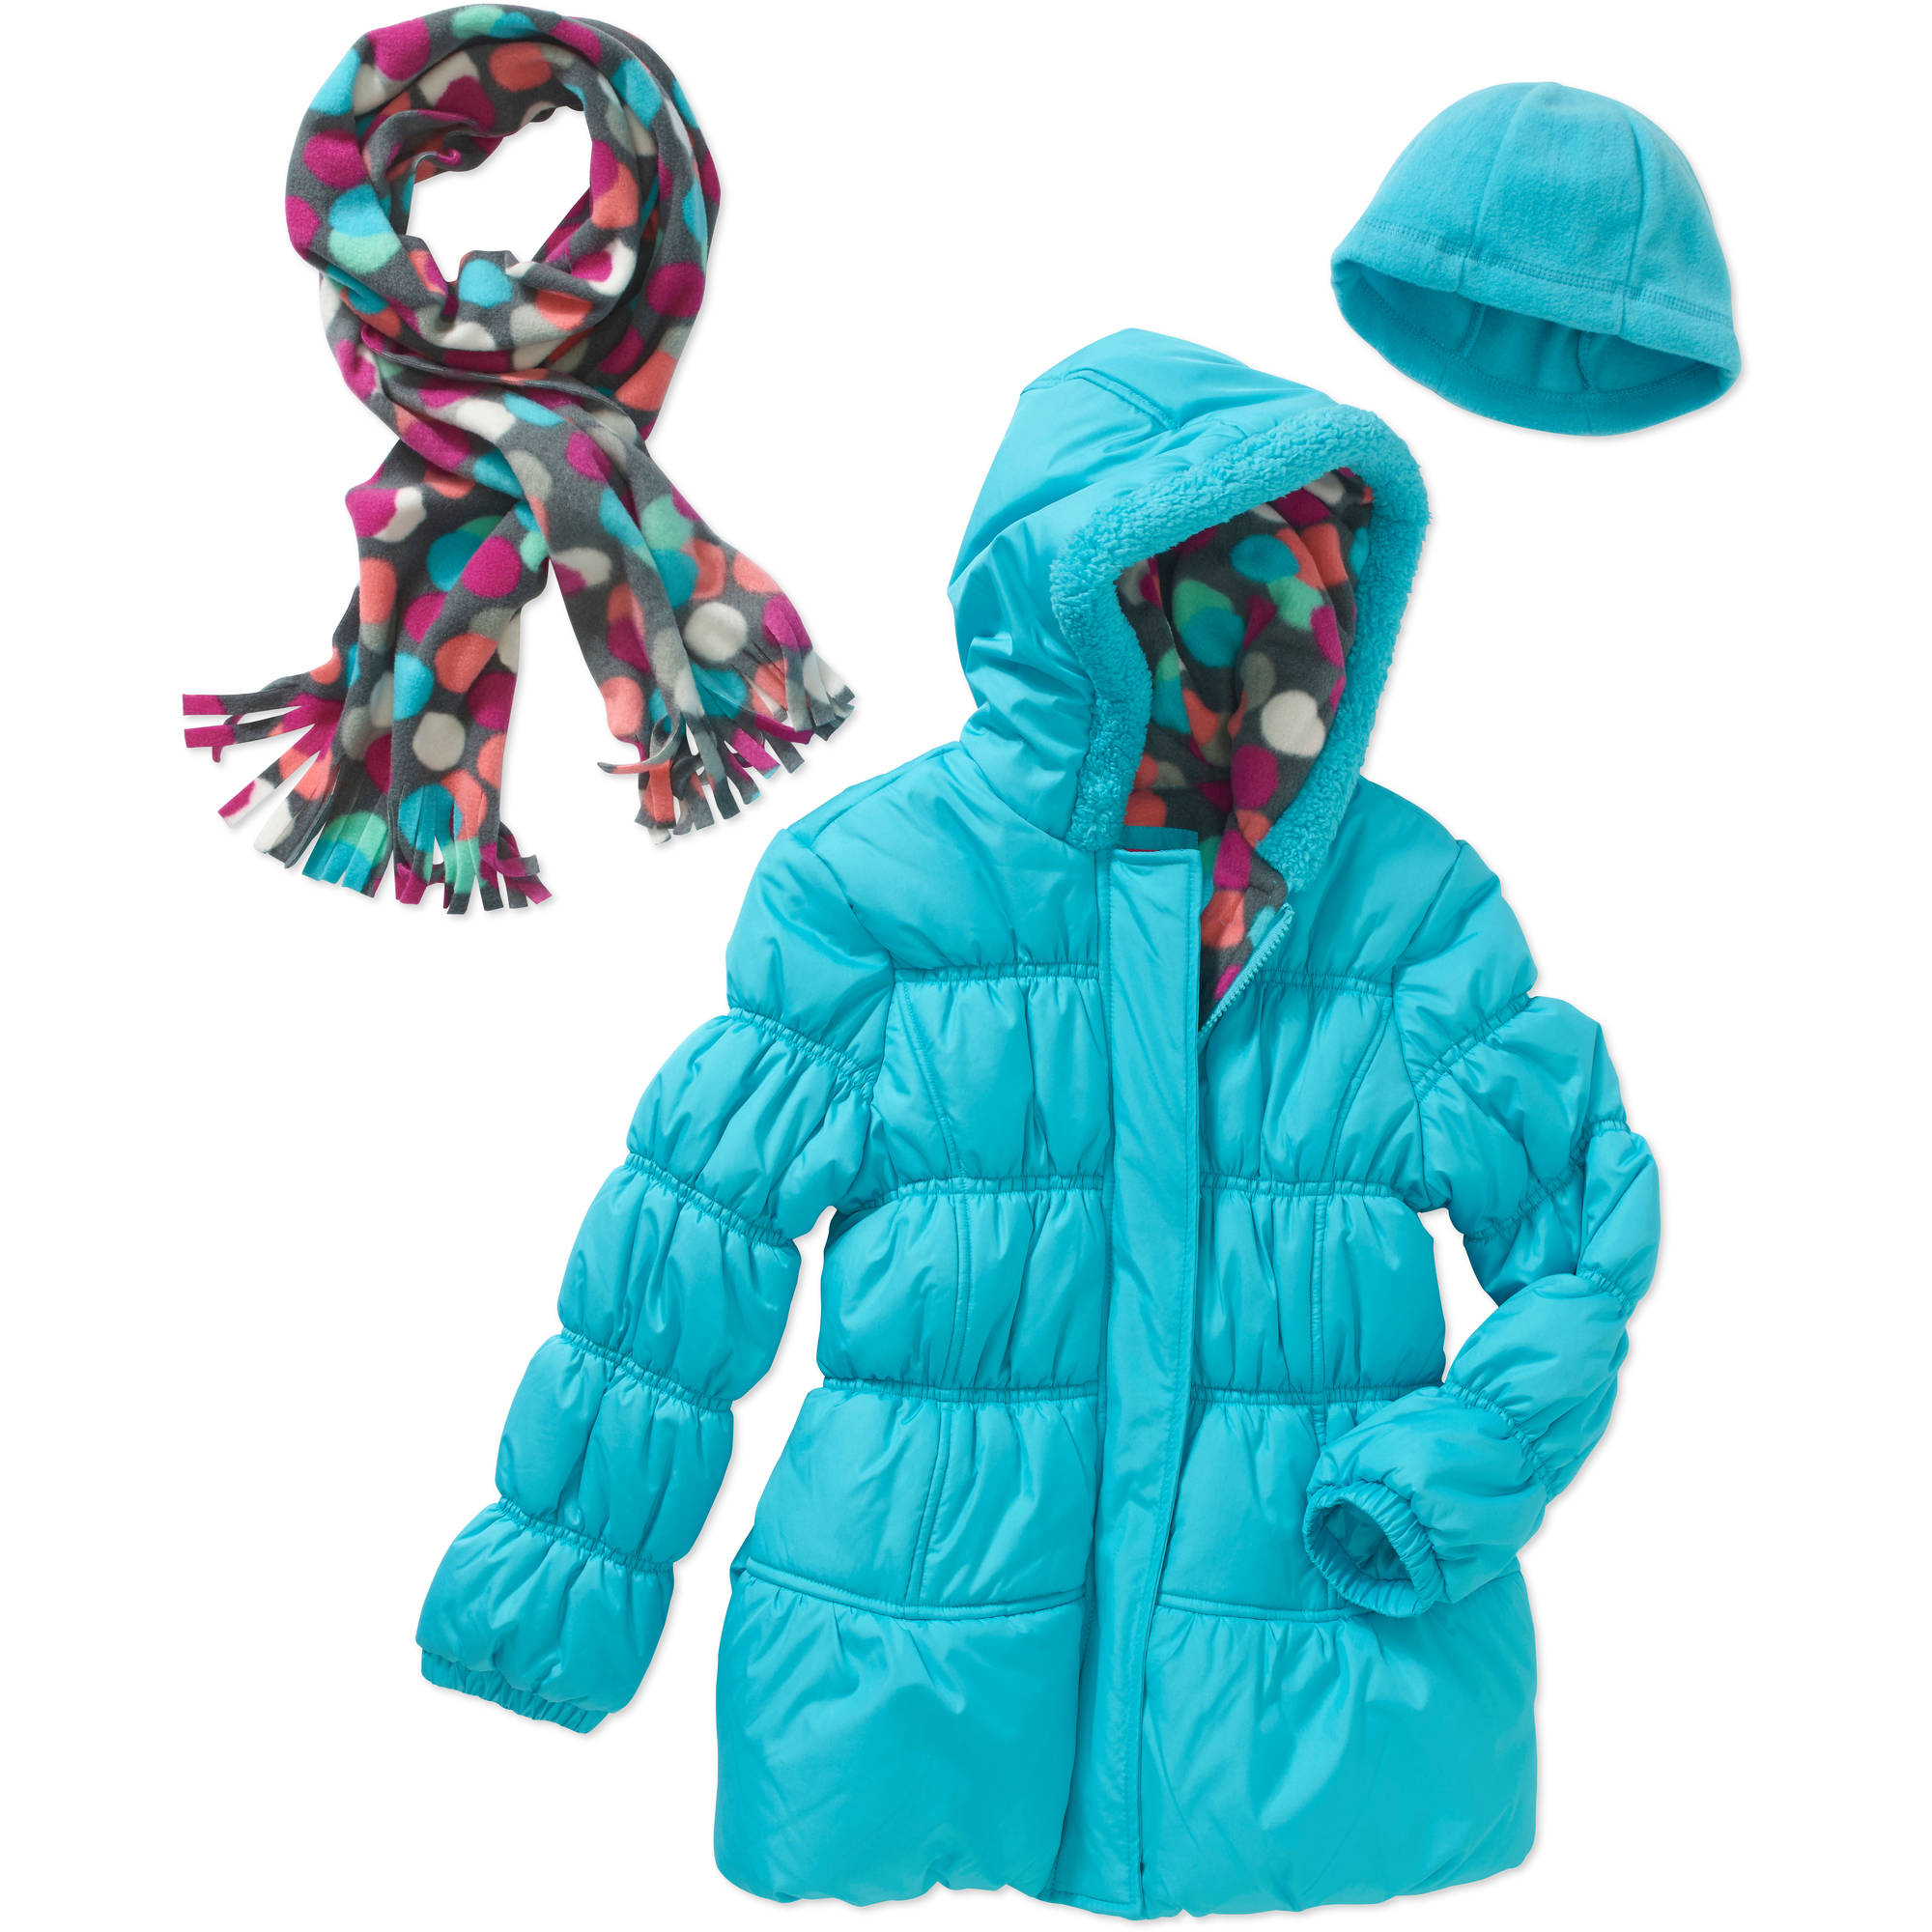 Pink Platinum Girls' Puffer Jacket with Faux Fur Trim Hood, Pockets, and Scarf